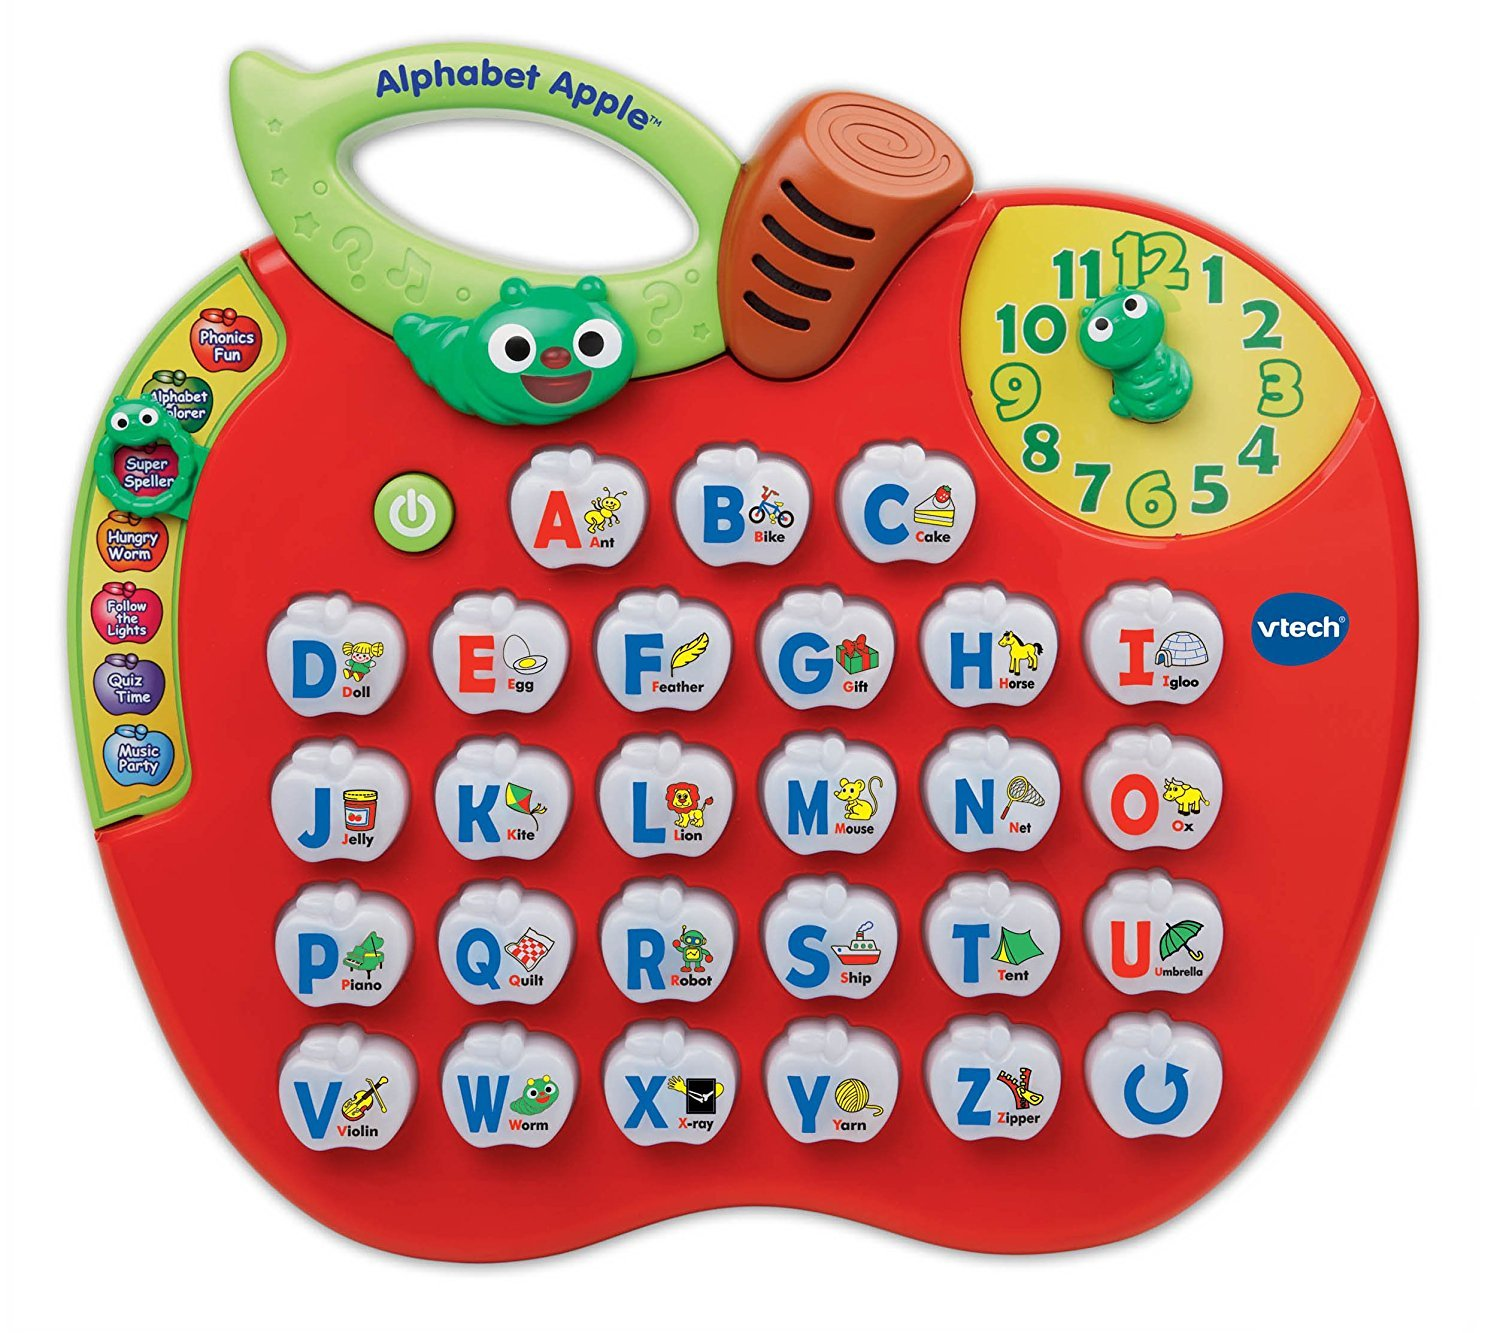 VTech Alphabet Apple